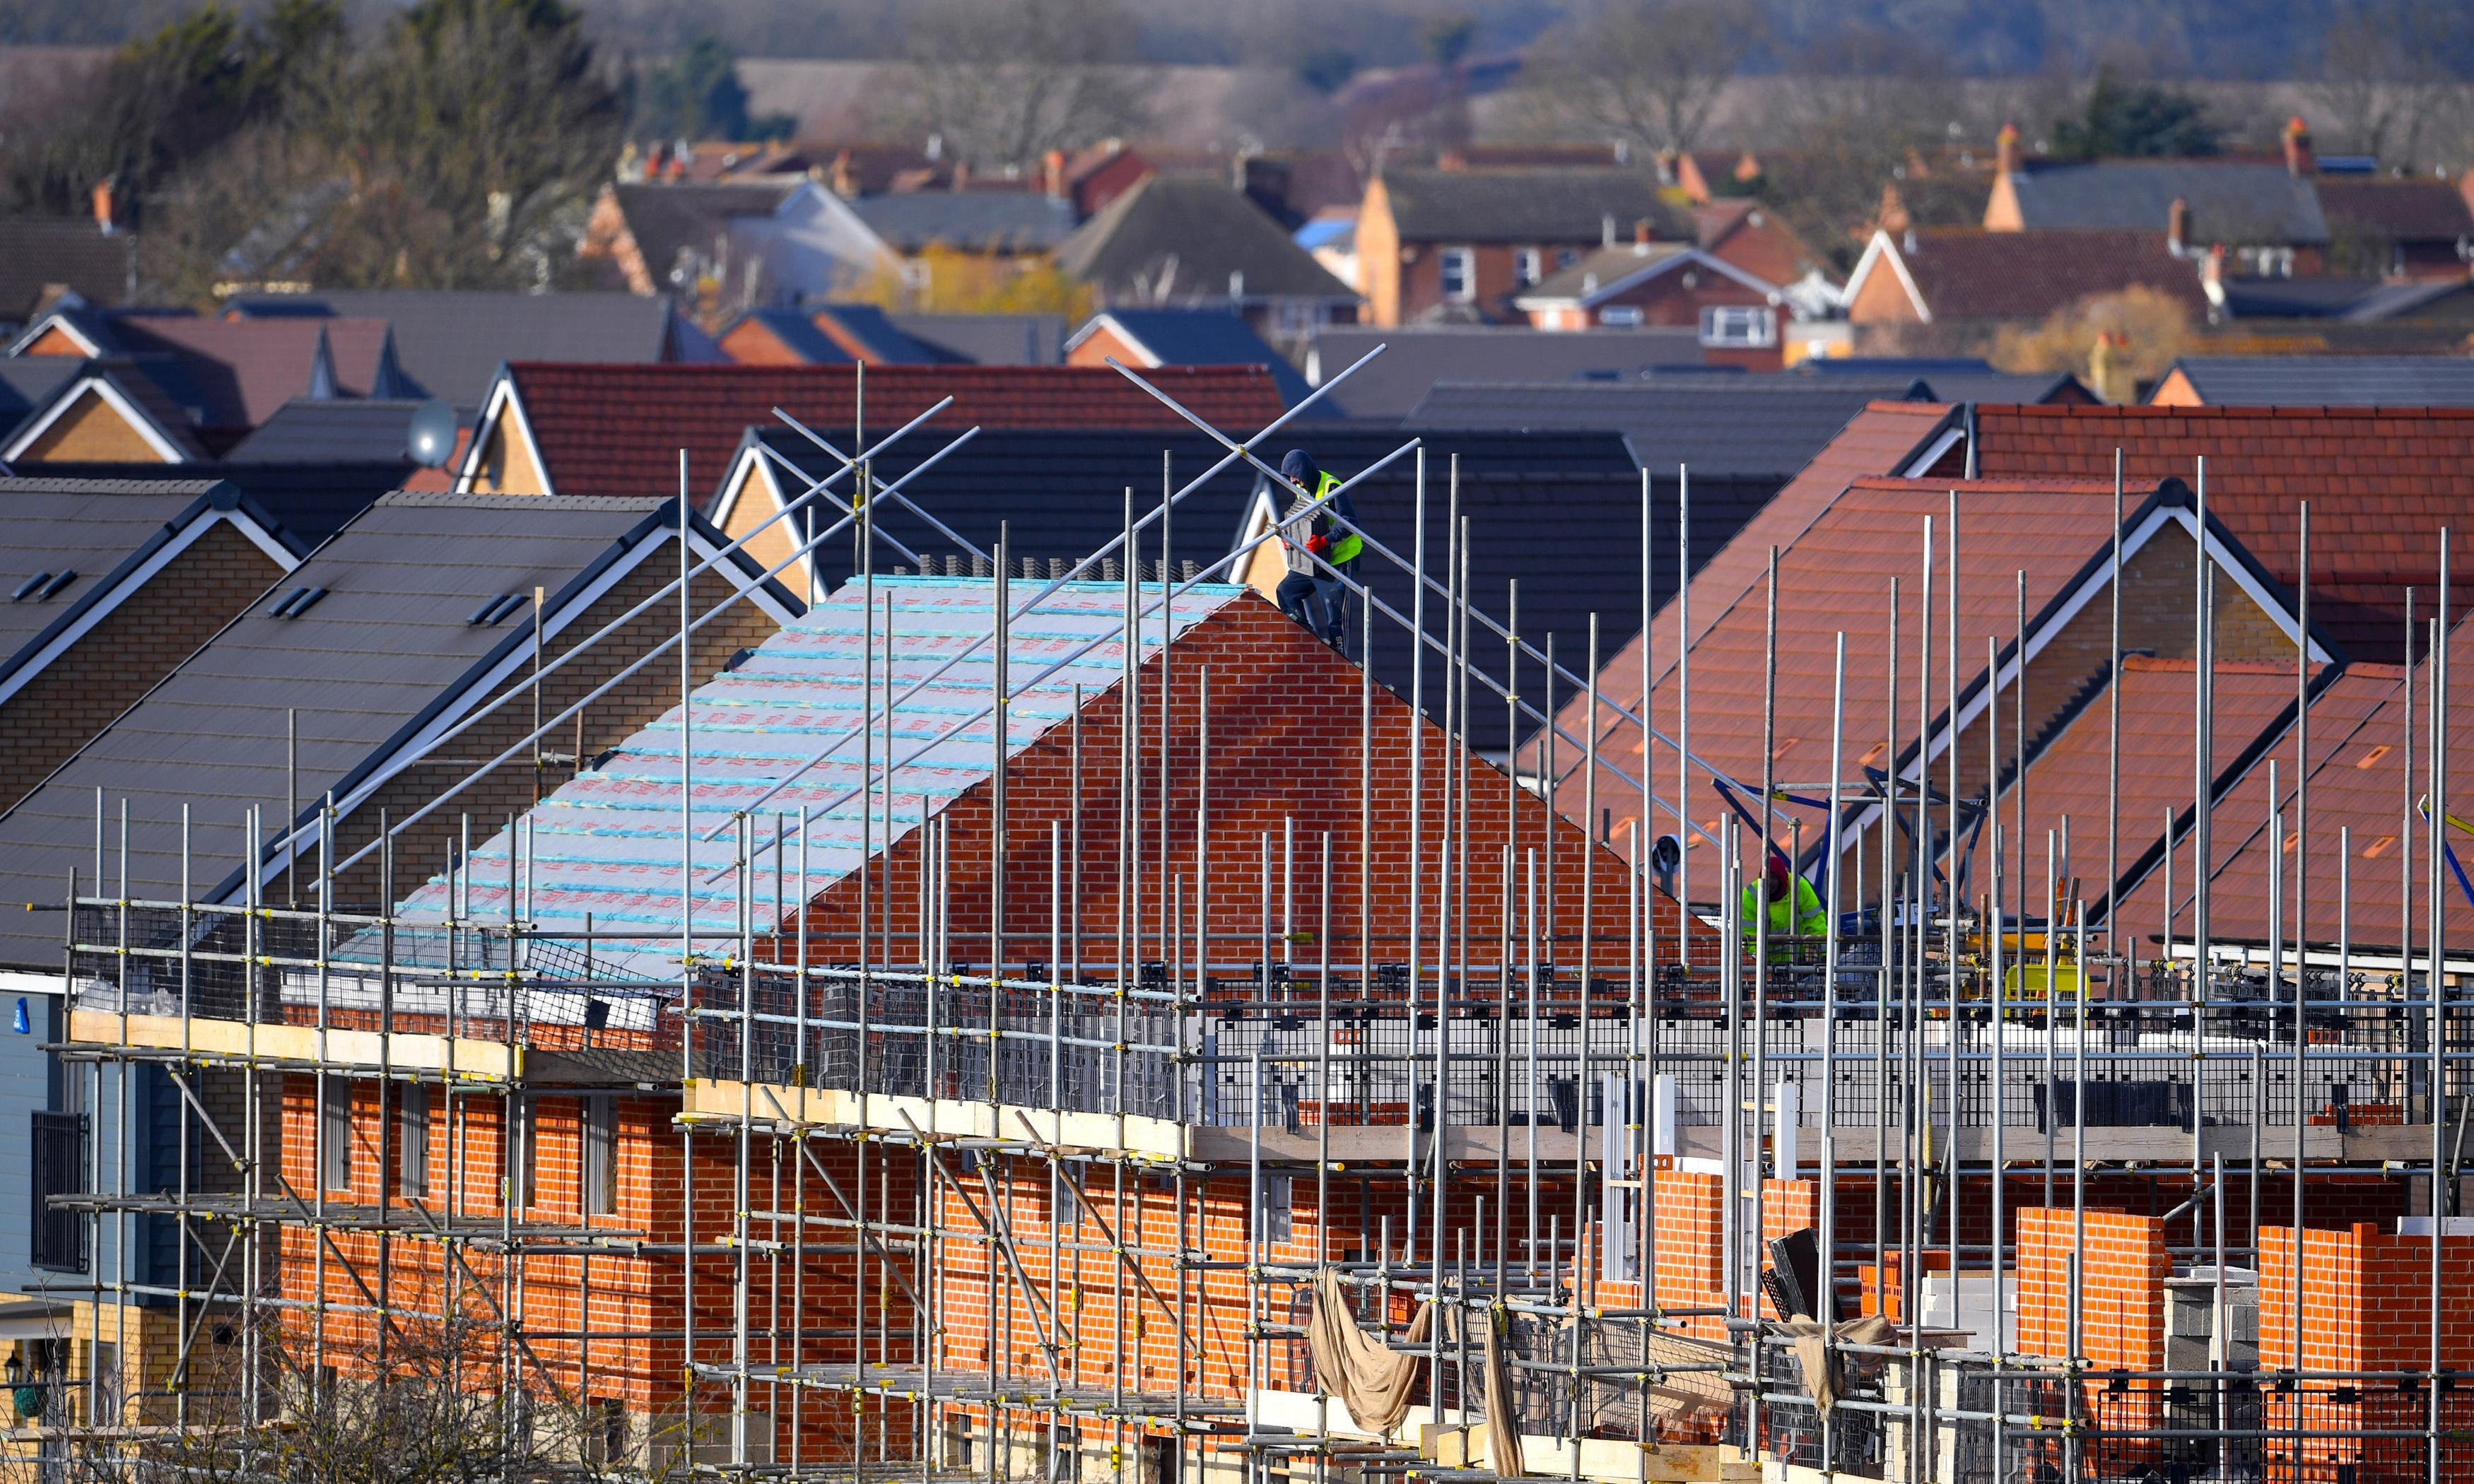 Here's how Britain's broken housing system can be fixed in a decade